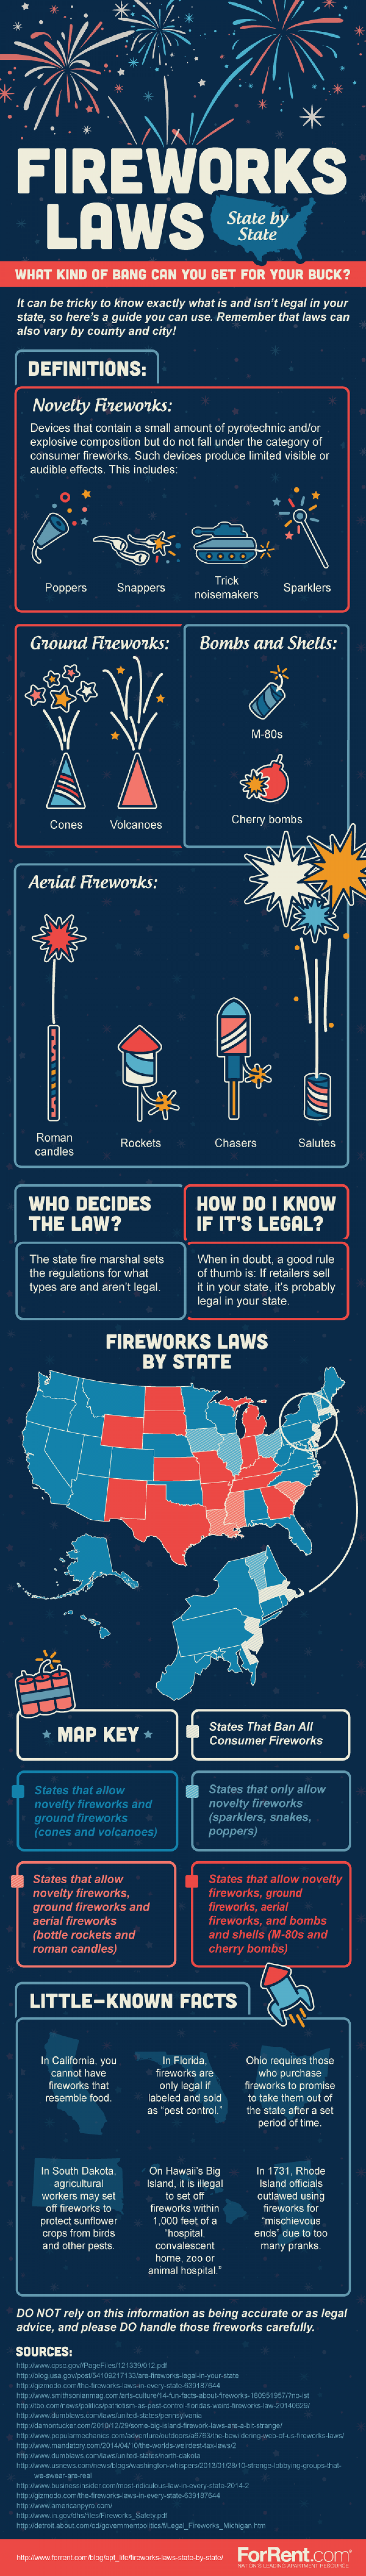 Complete Guide to Fireworks Laws by State  Infographic